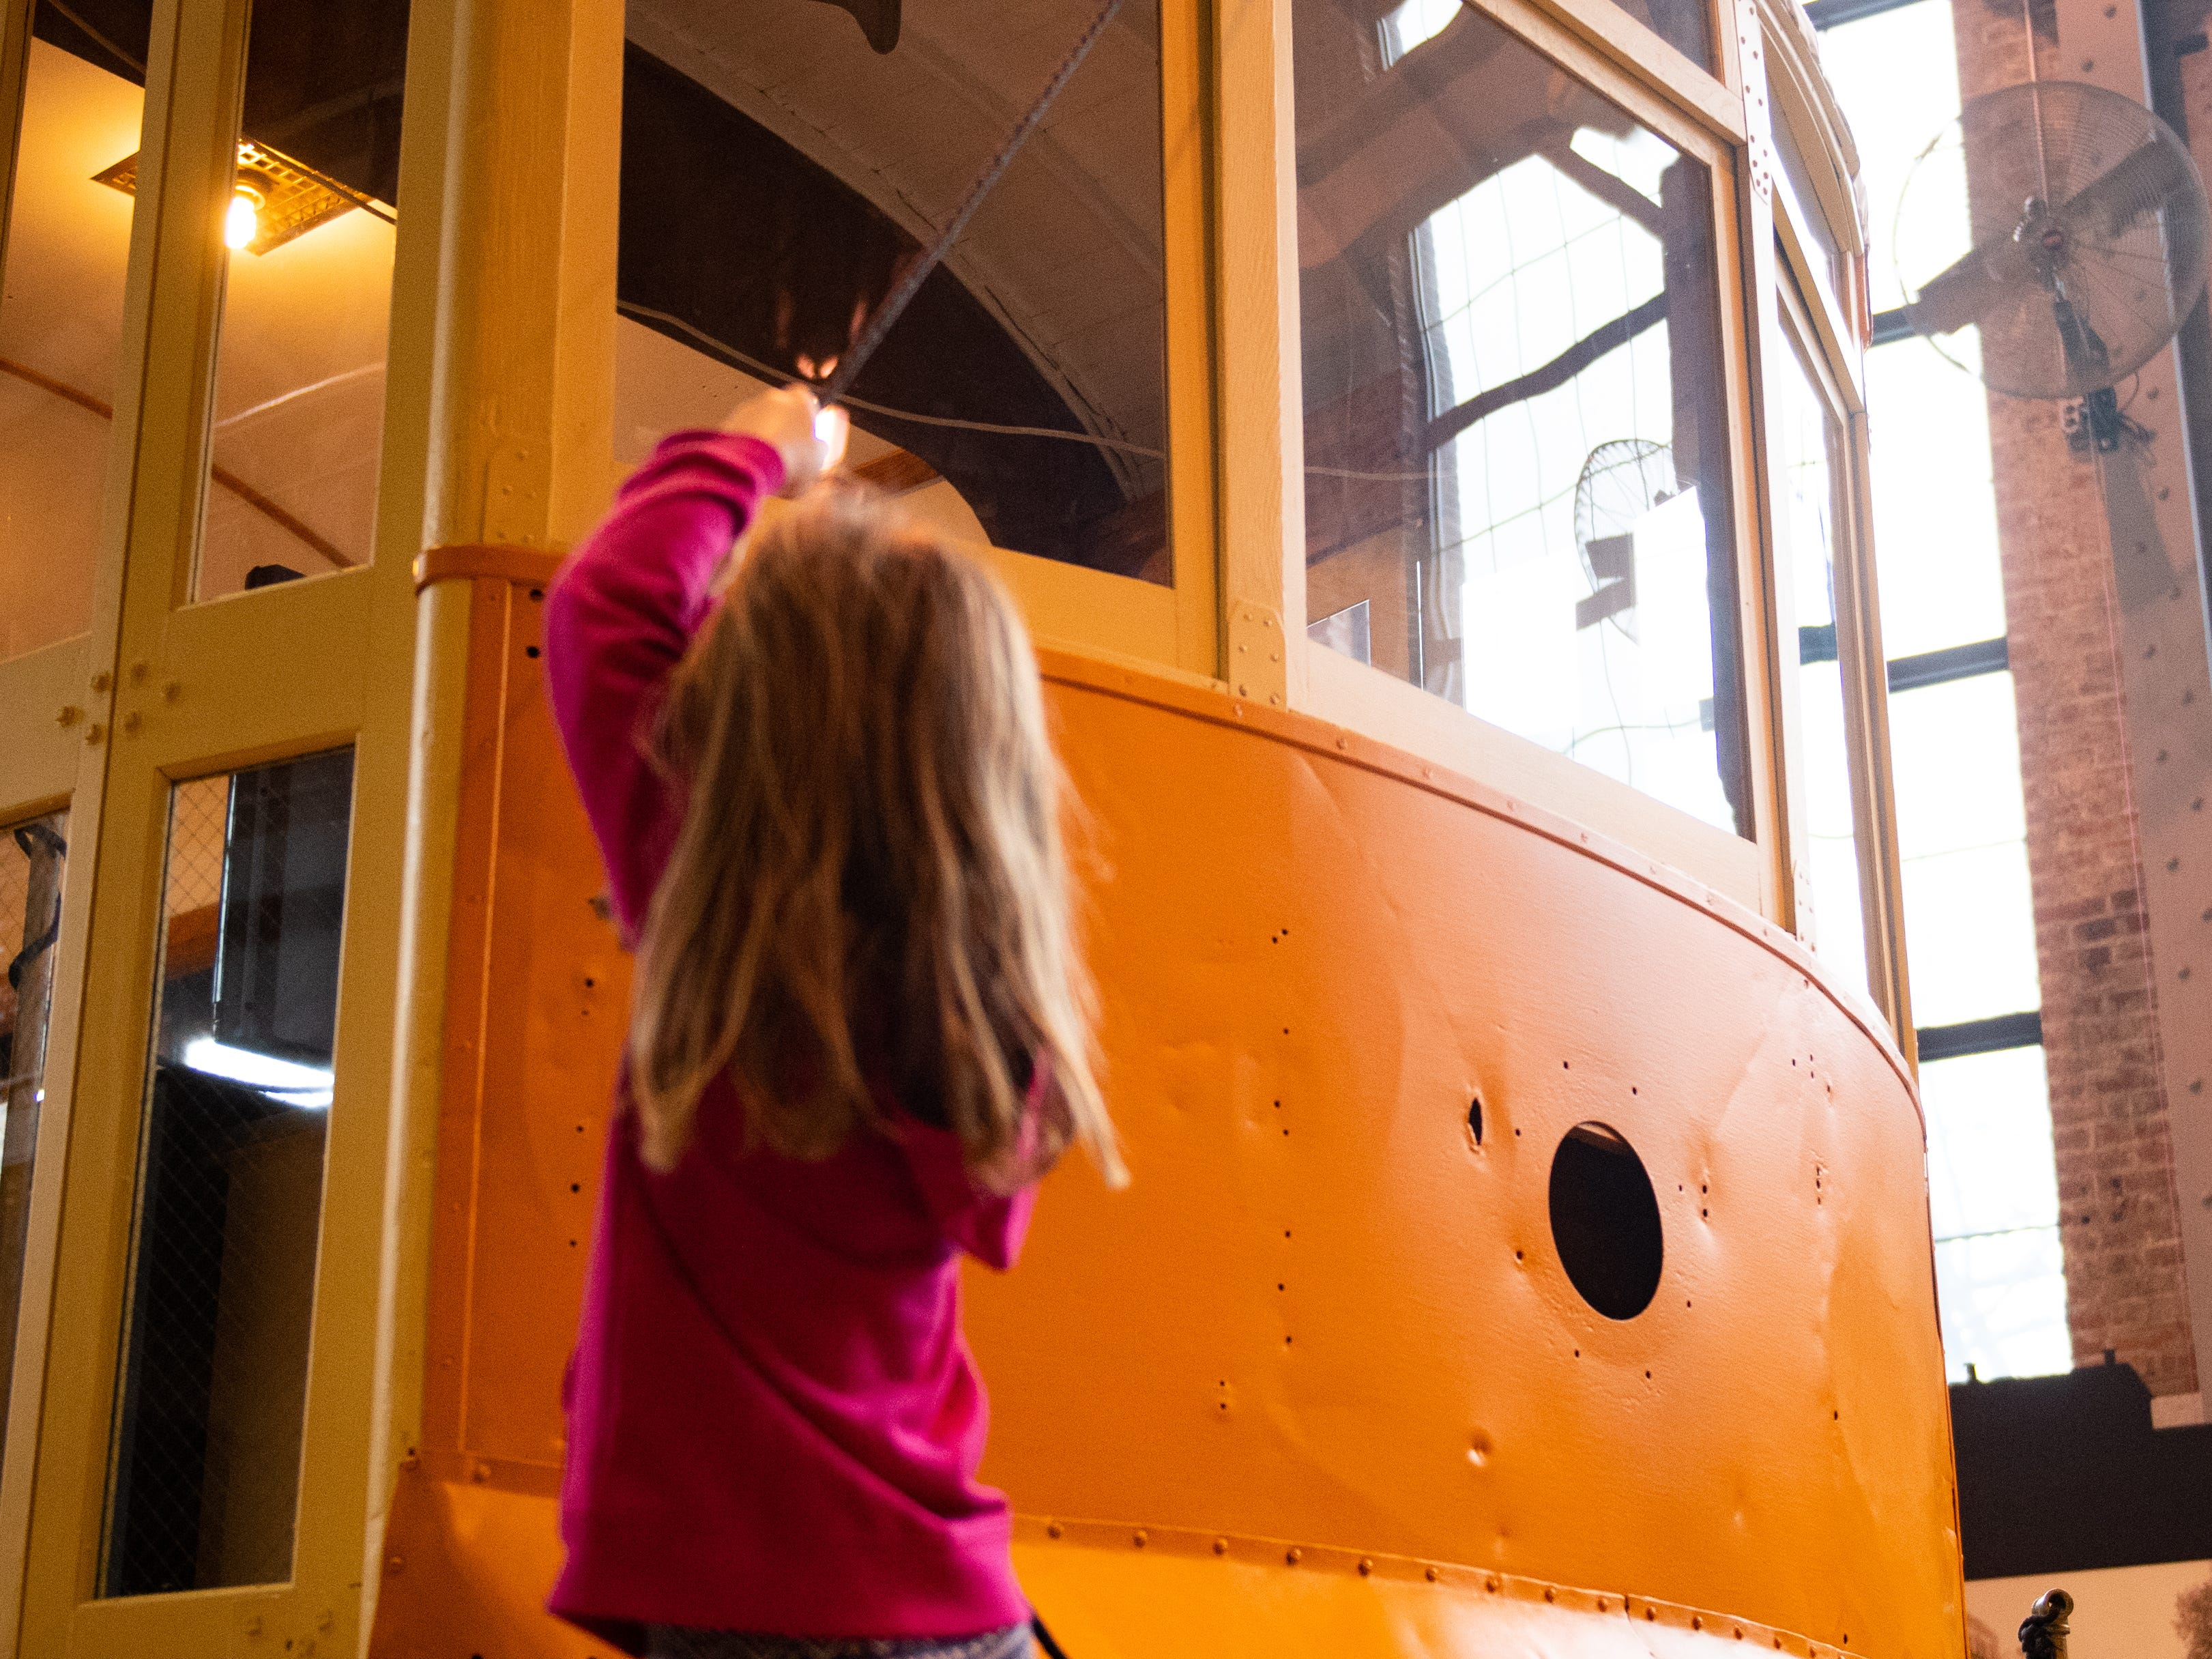 Children can see how a cable car works during family activity day at the Agricultural and Industrial Museum, Friday, December 28, 2018.